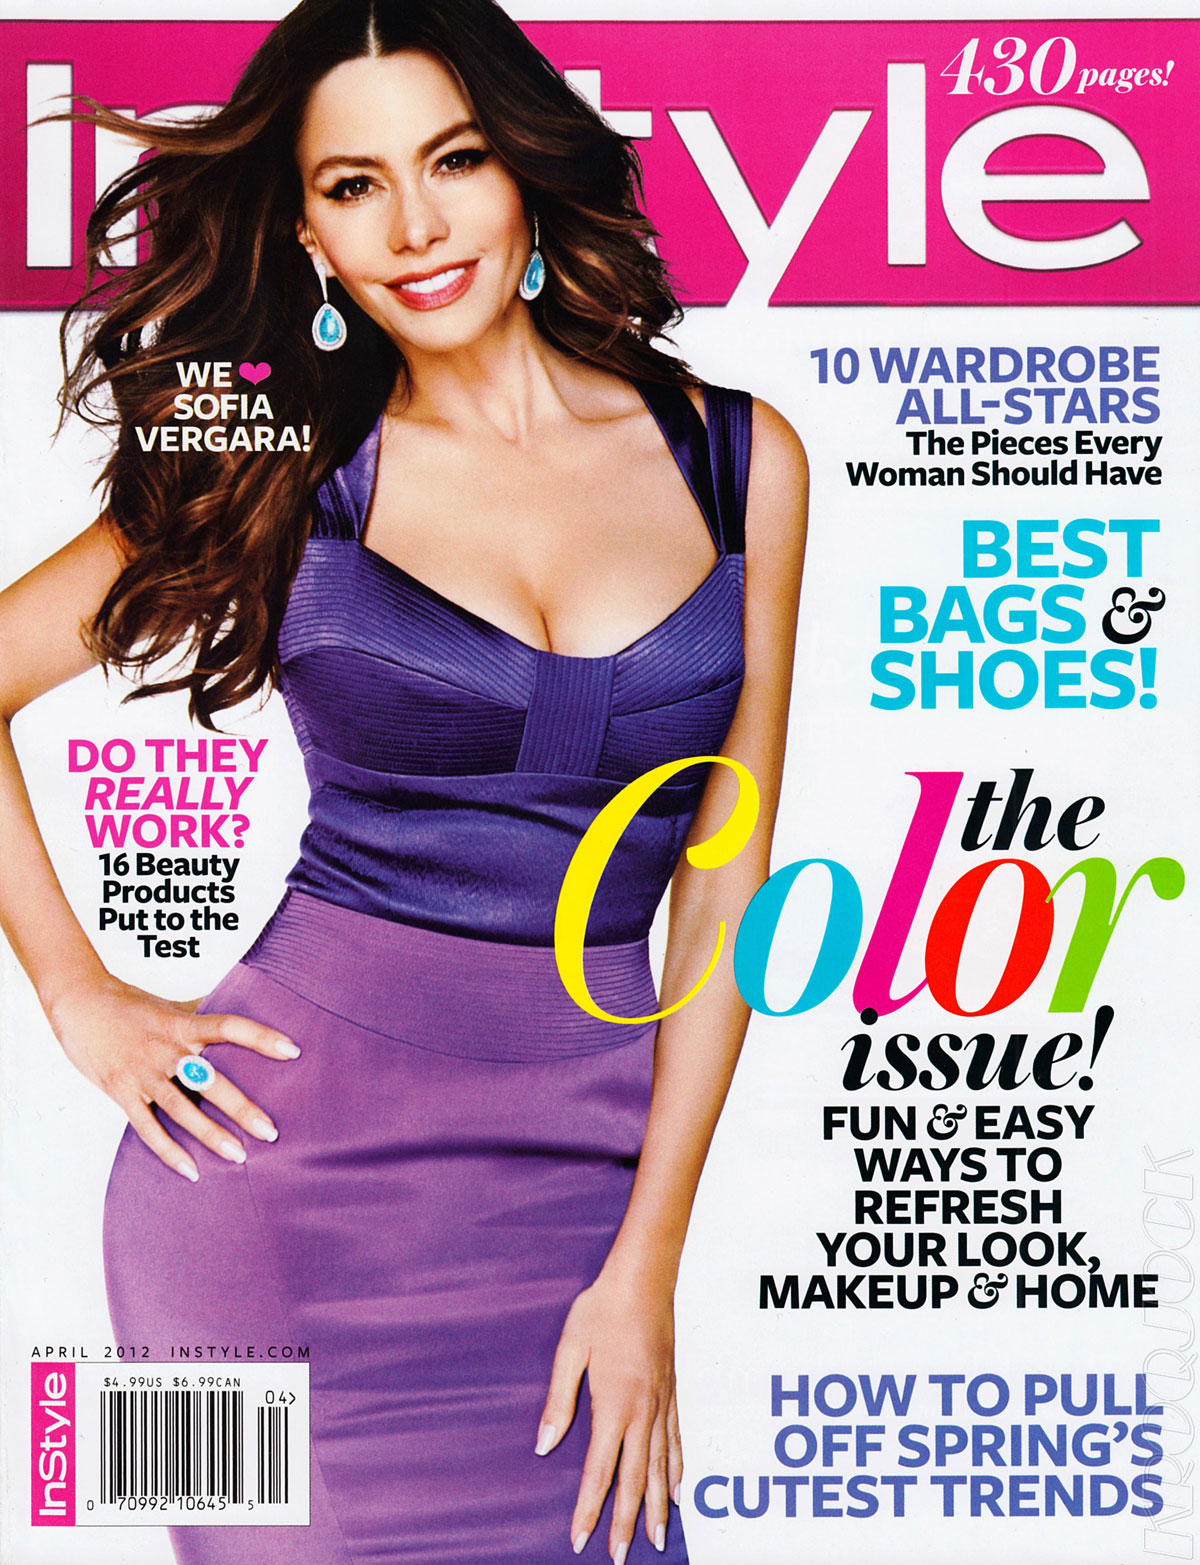 Instyle Magazine Us: Fashion Of This Week: Sofia Vergara Hot In Bra-InStyle